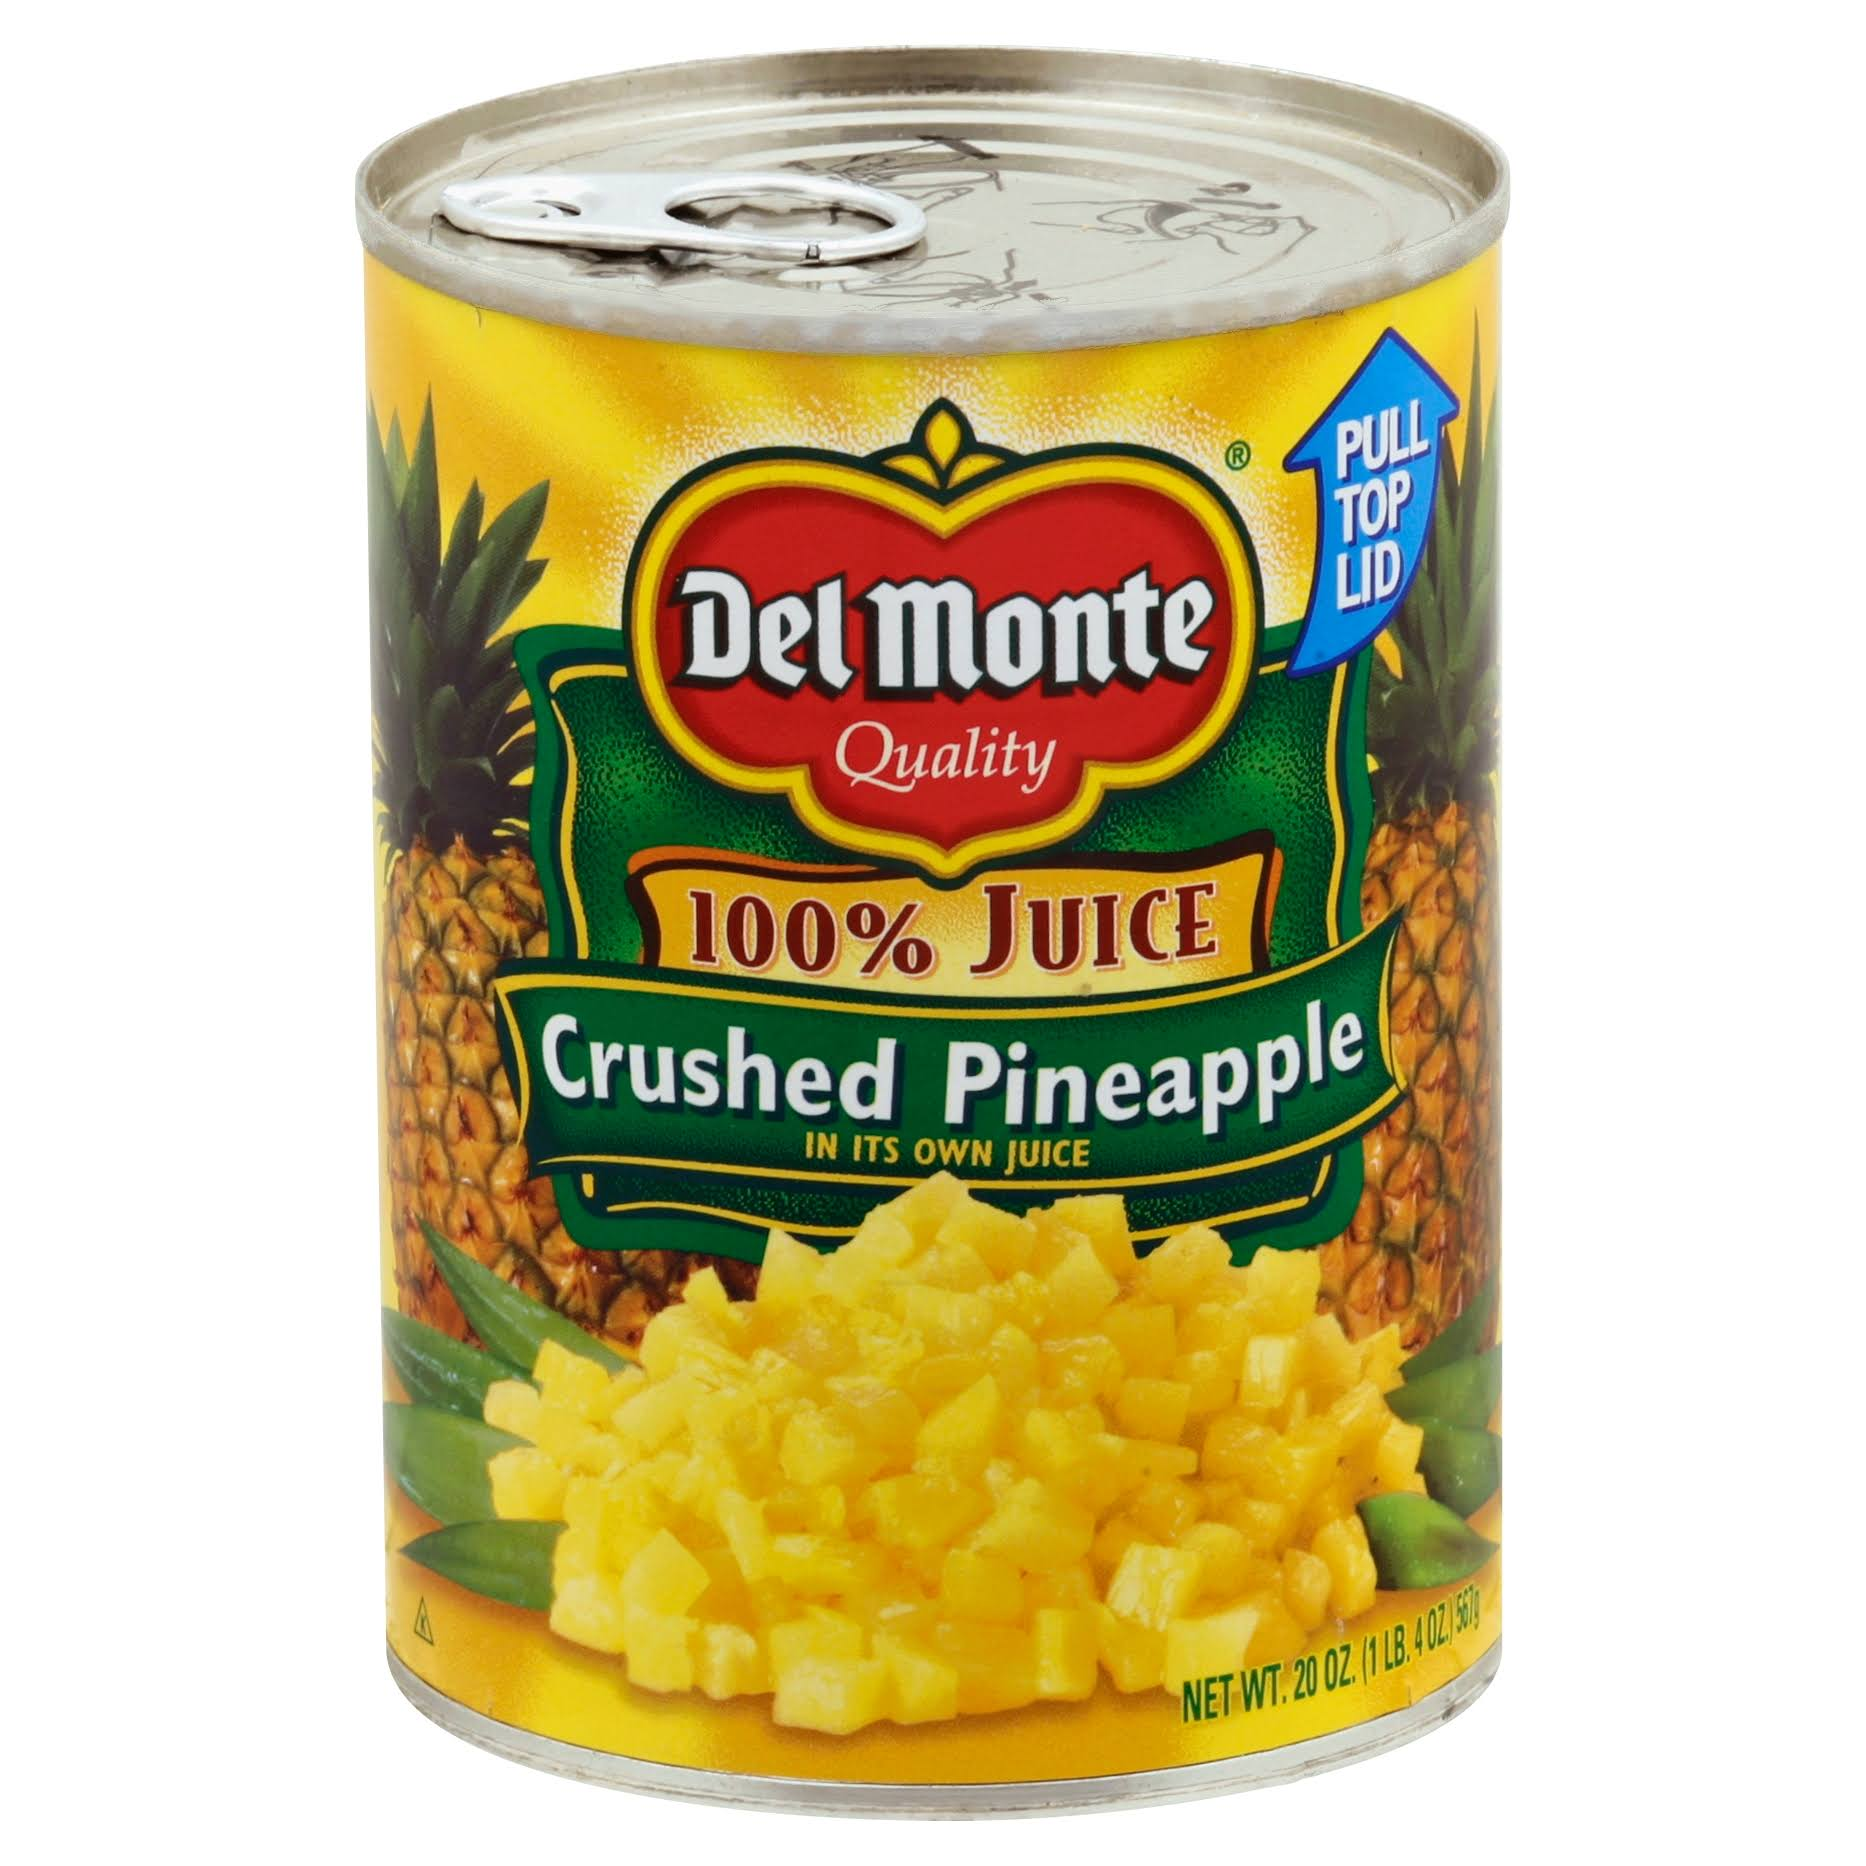 Del Monte Juice Crushed Pineapple - 20oz